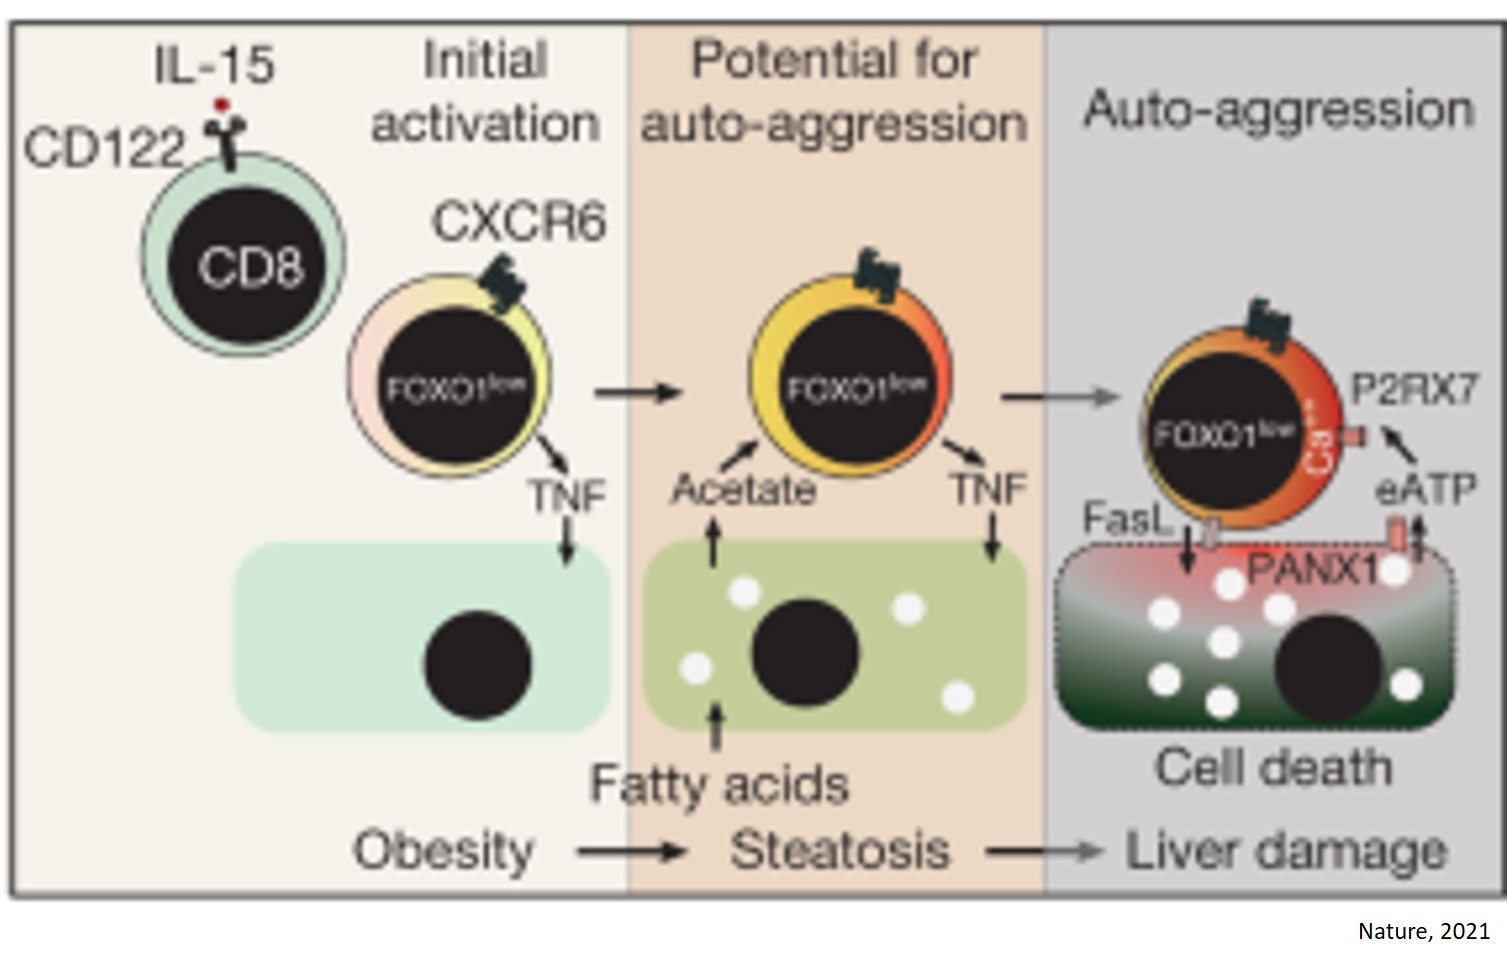 Auto-aggressive immune cells attack liver cells to cause fatty liver